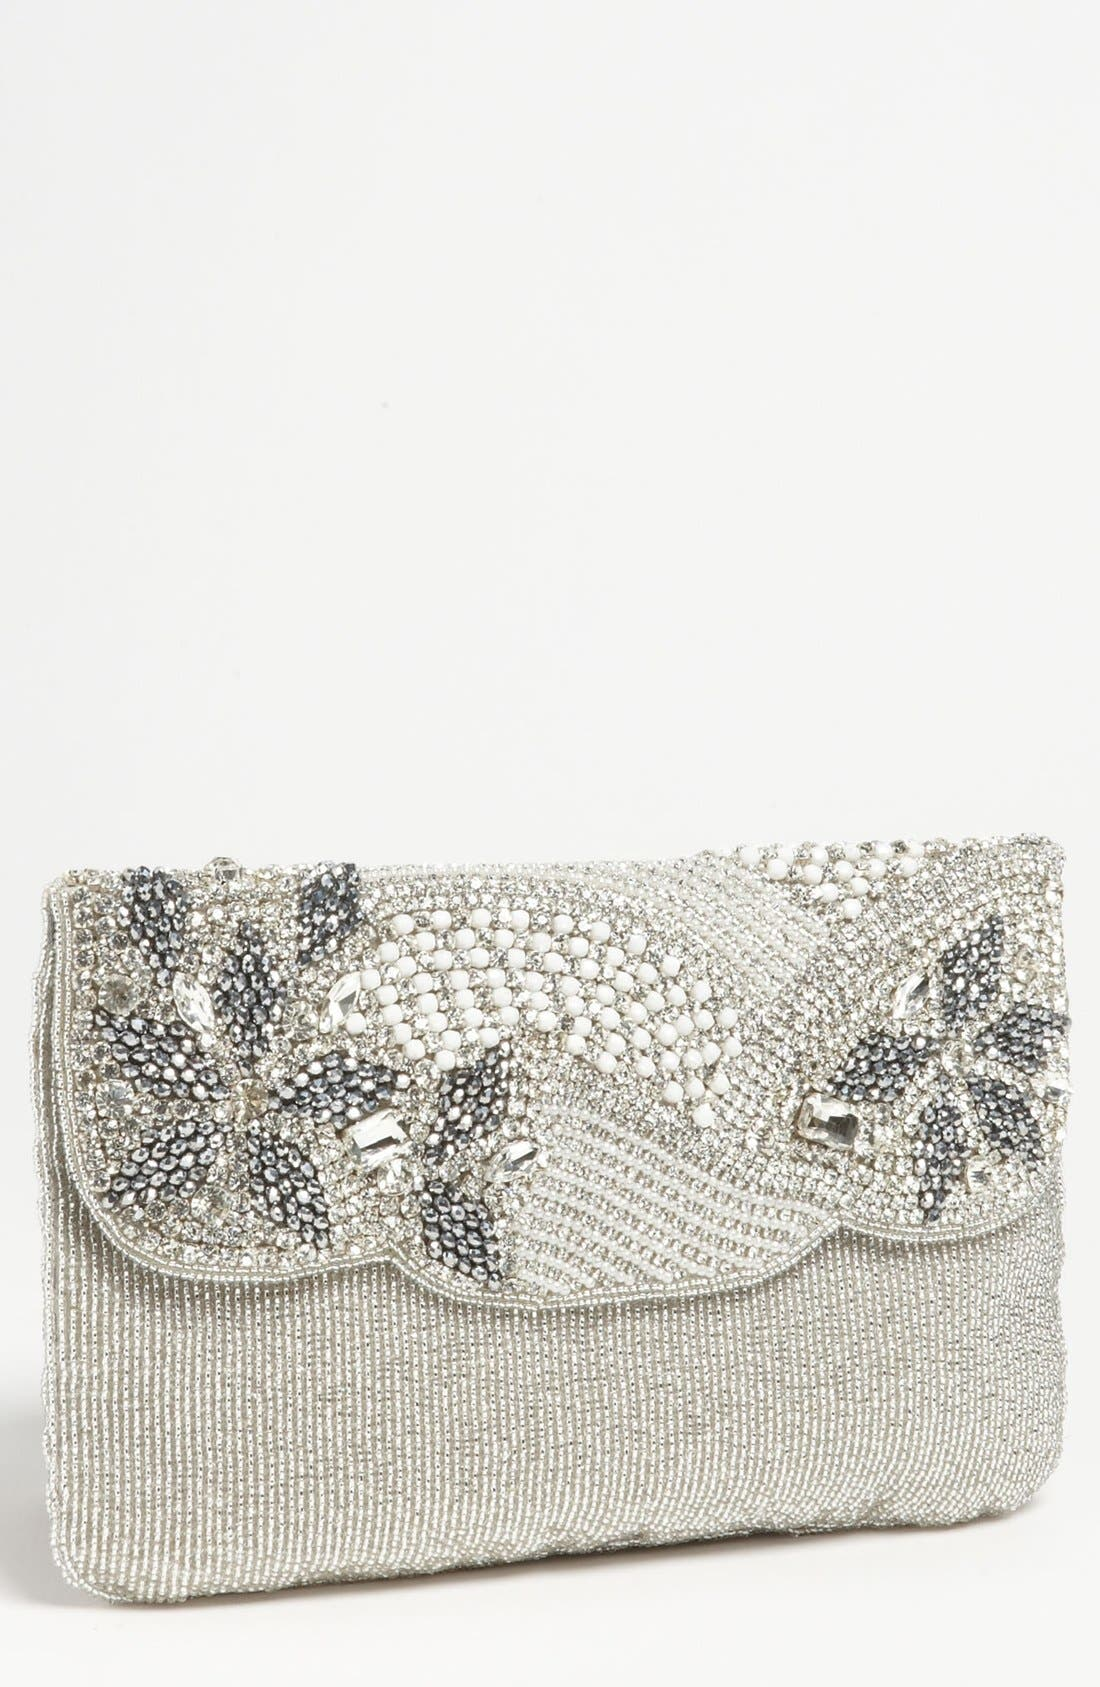 Main Image - Micky London Handbags Beaded Envelope Clutch